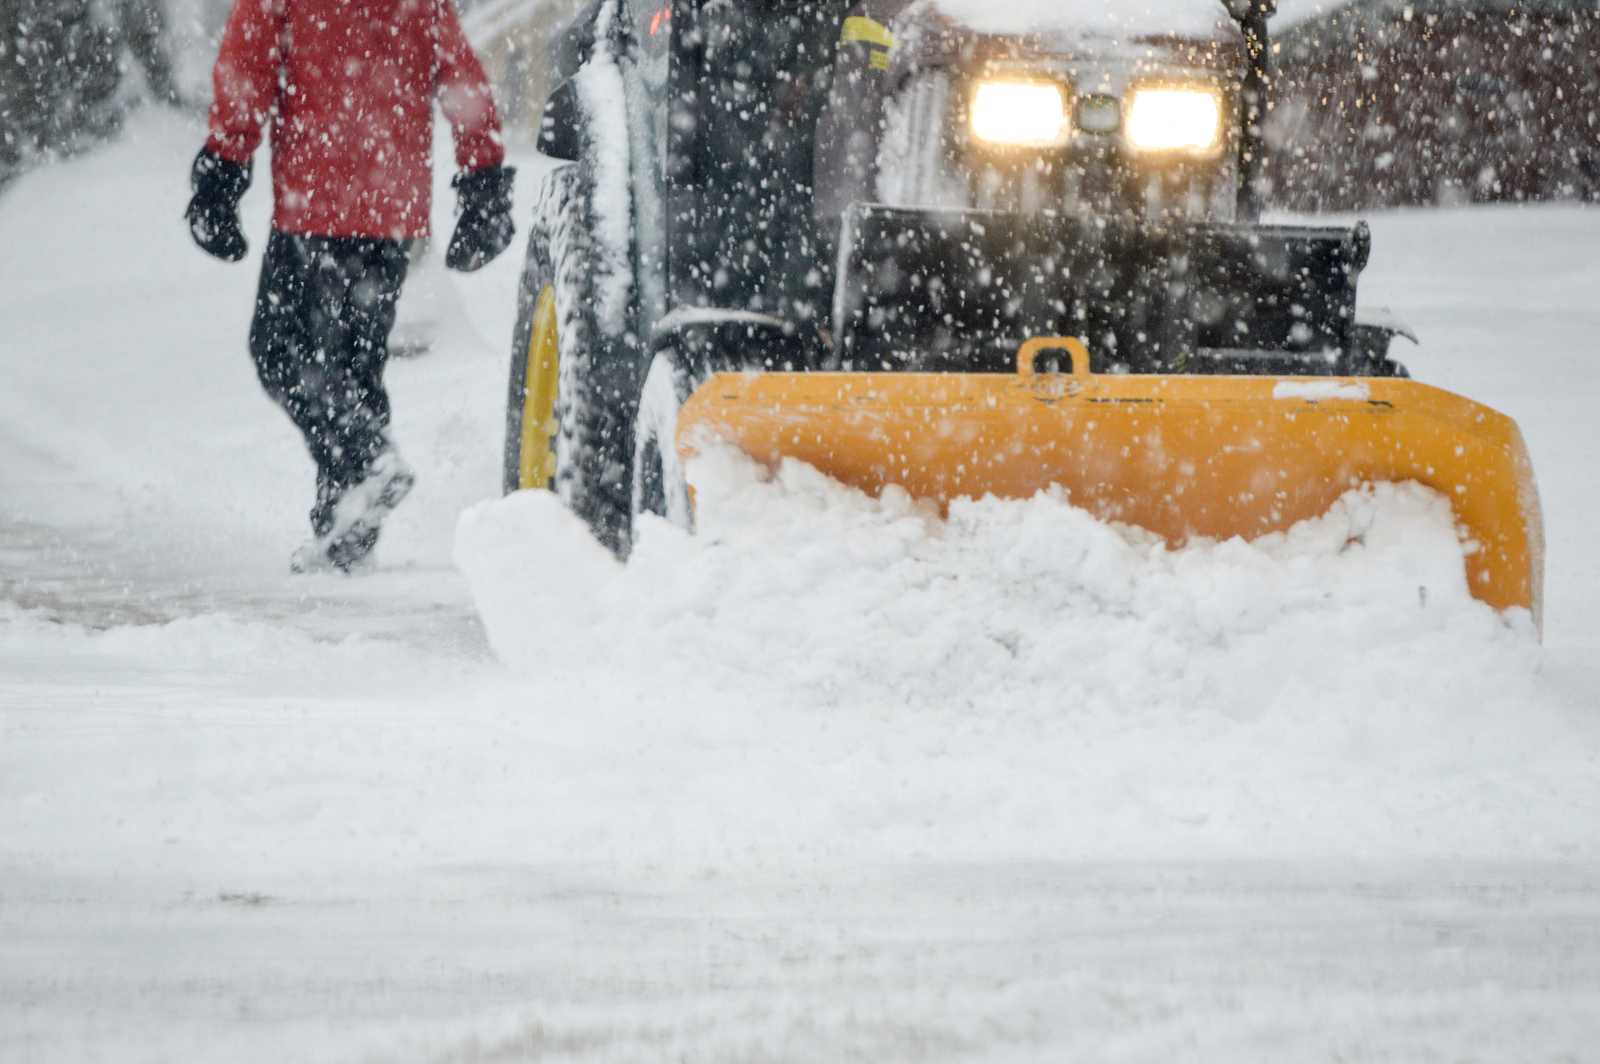 Winter storm conditions with snow removal on city streets with snow plow plowing the roads and pedestrian person walking through snow storm in icy winter weather background image